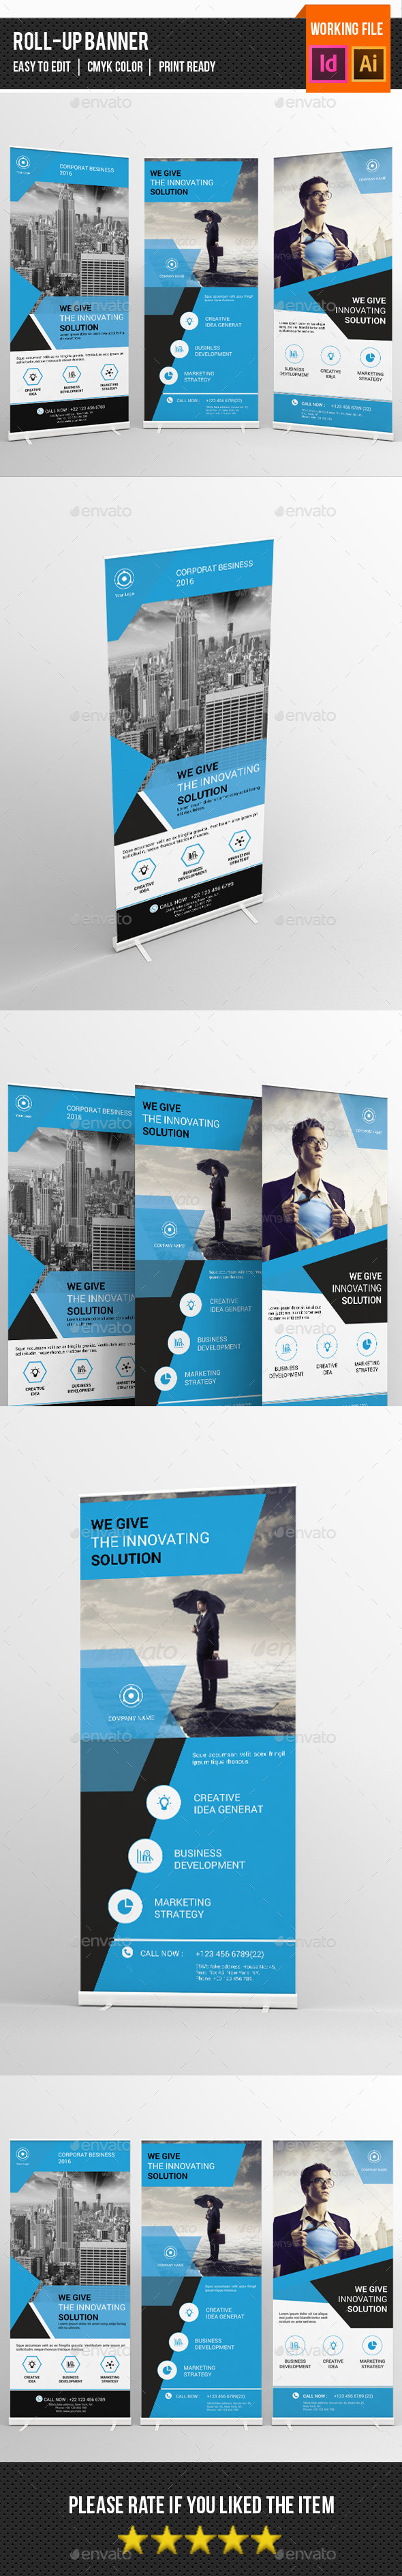 Corporate Roll up Banner-V02 - Signage Print Templates